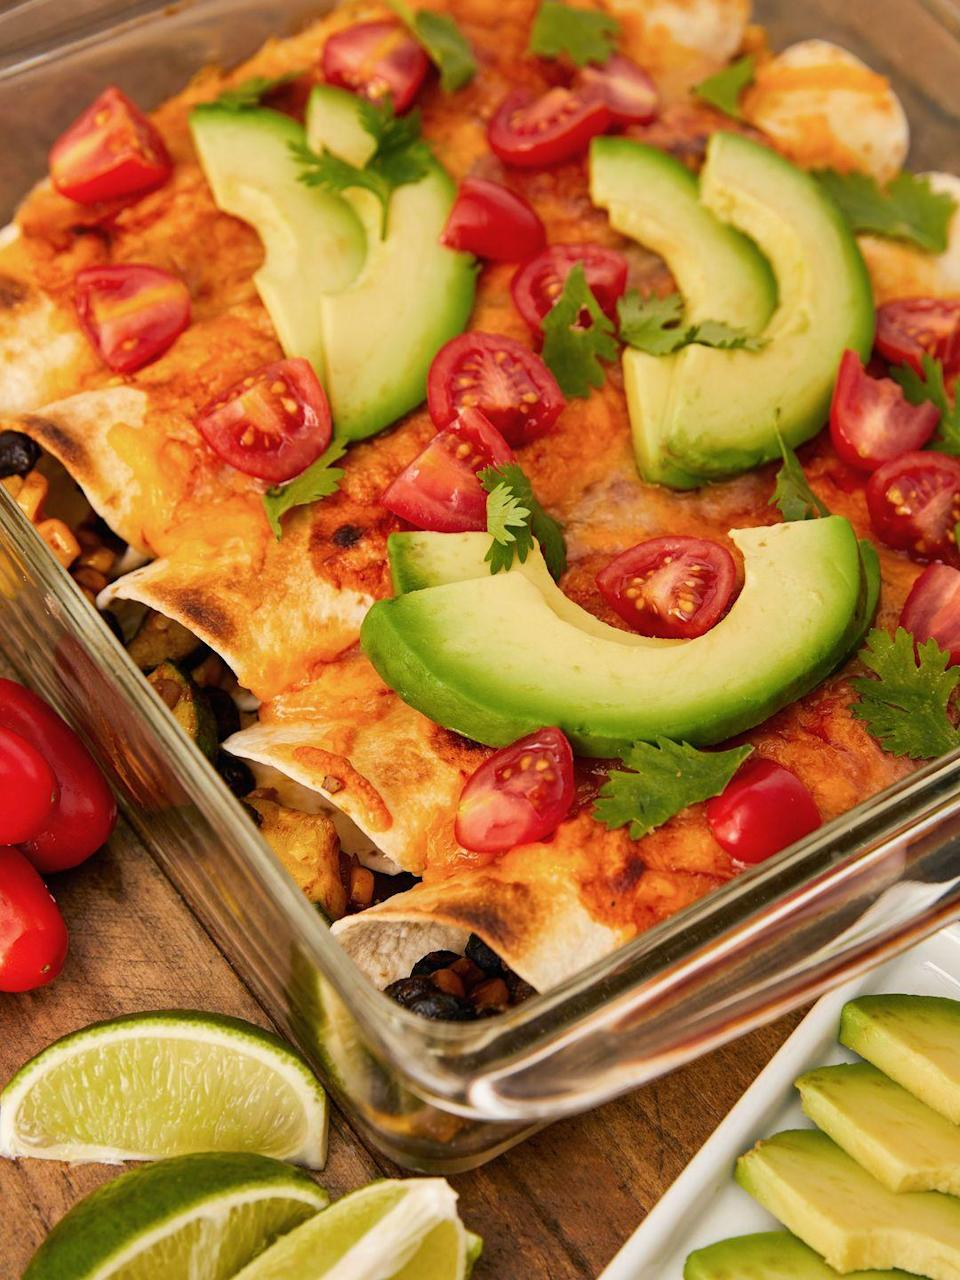 "<p>Definition of a healthy and hearty meal. </p><p>Get the recipe from <a href=""https://www.delish.com/cooking/recipe-ideas/a23573506/vegetarian-enchiladas-recipe/"" rel=""nofollow noopener"" target=""_blank"" data-ylk=""slk:Delish"" class=""link rapid-noclick-resp"">Delish</a>. </p>"